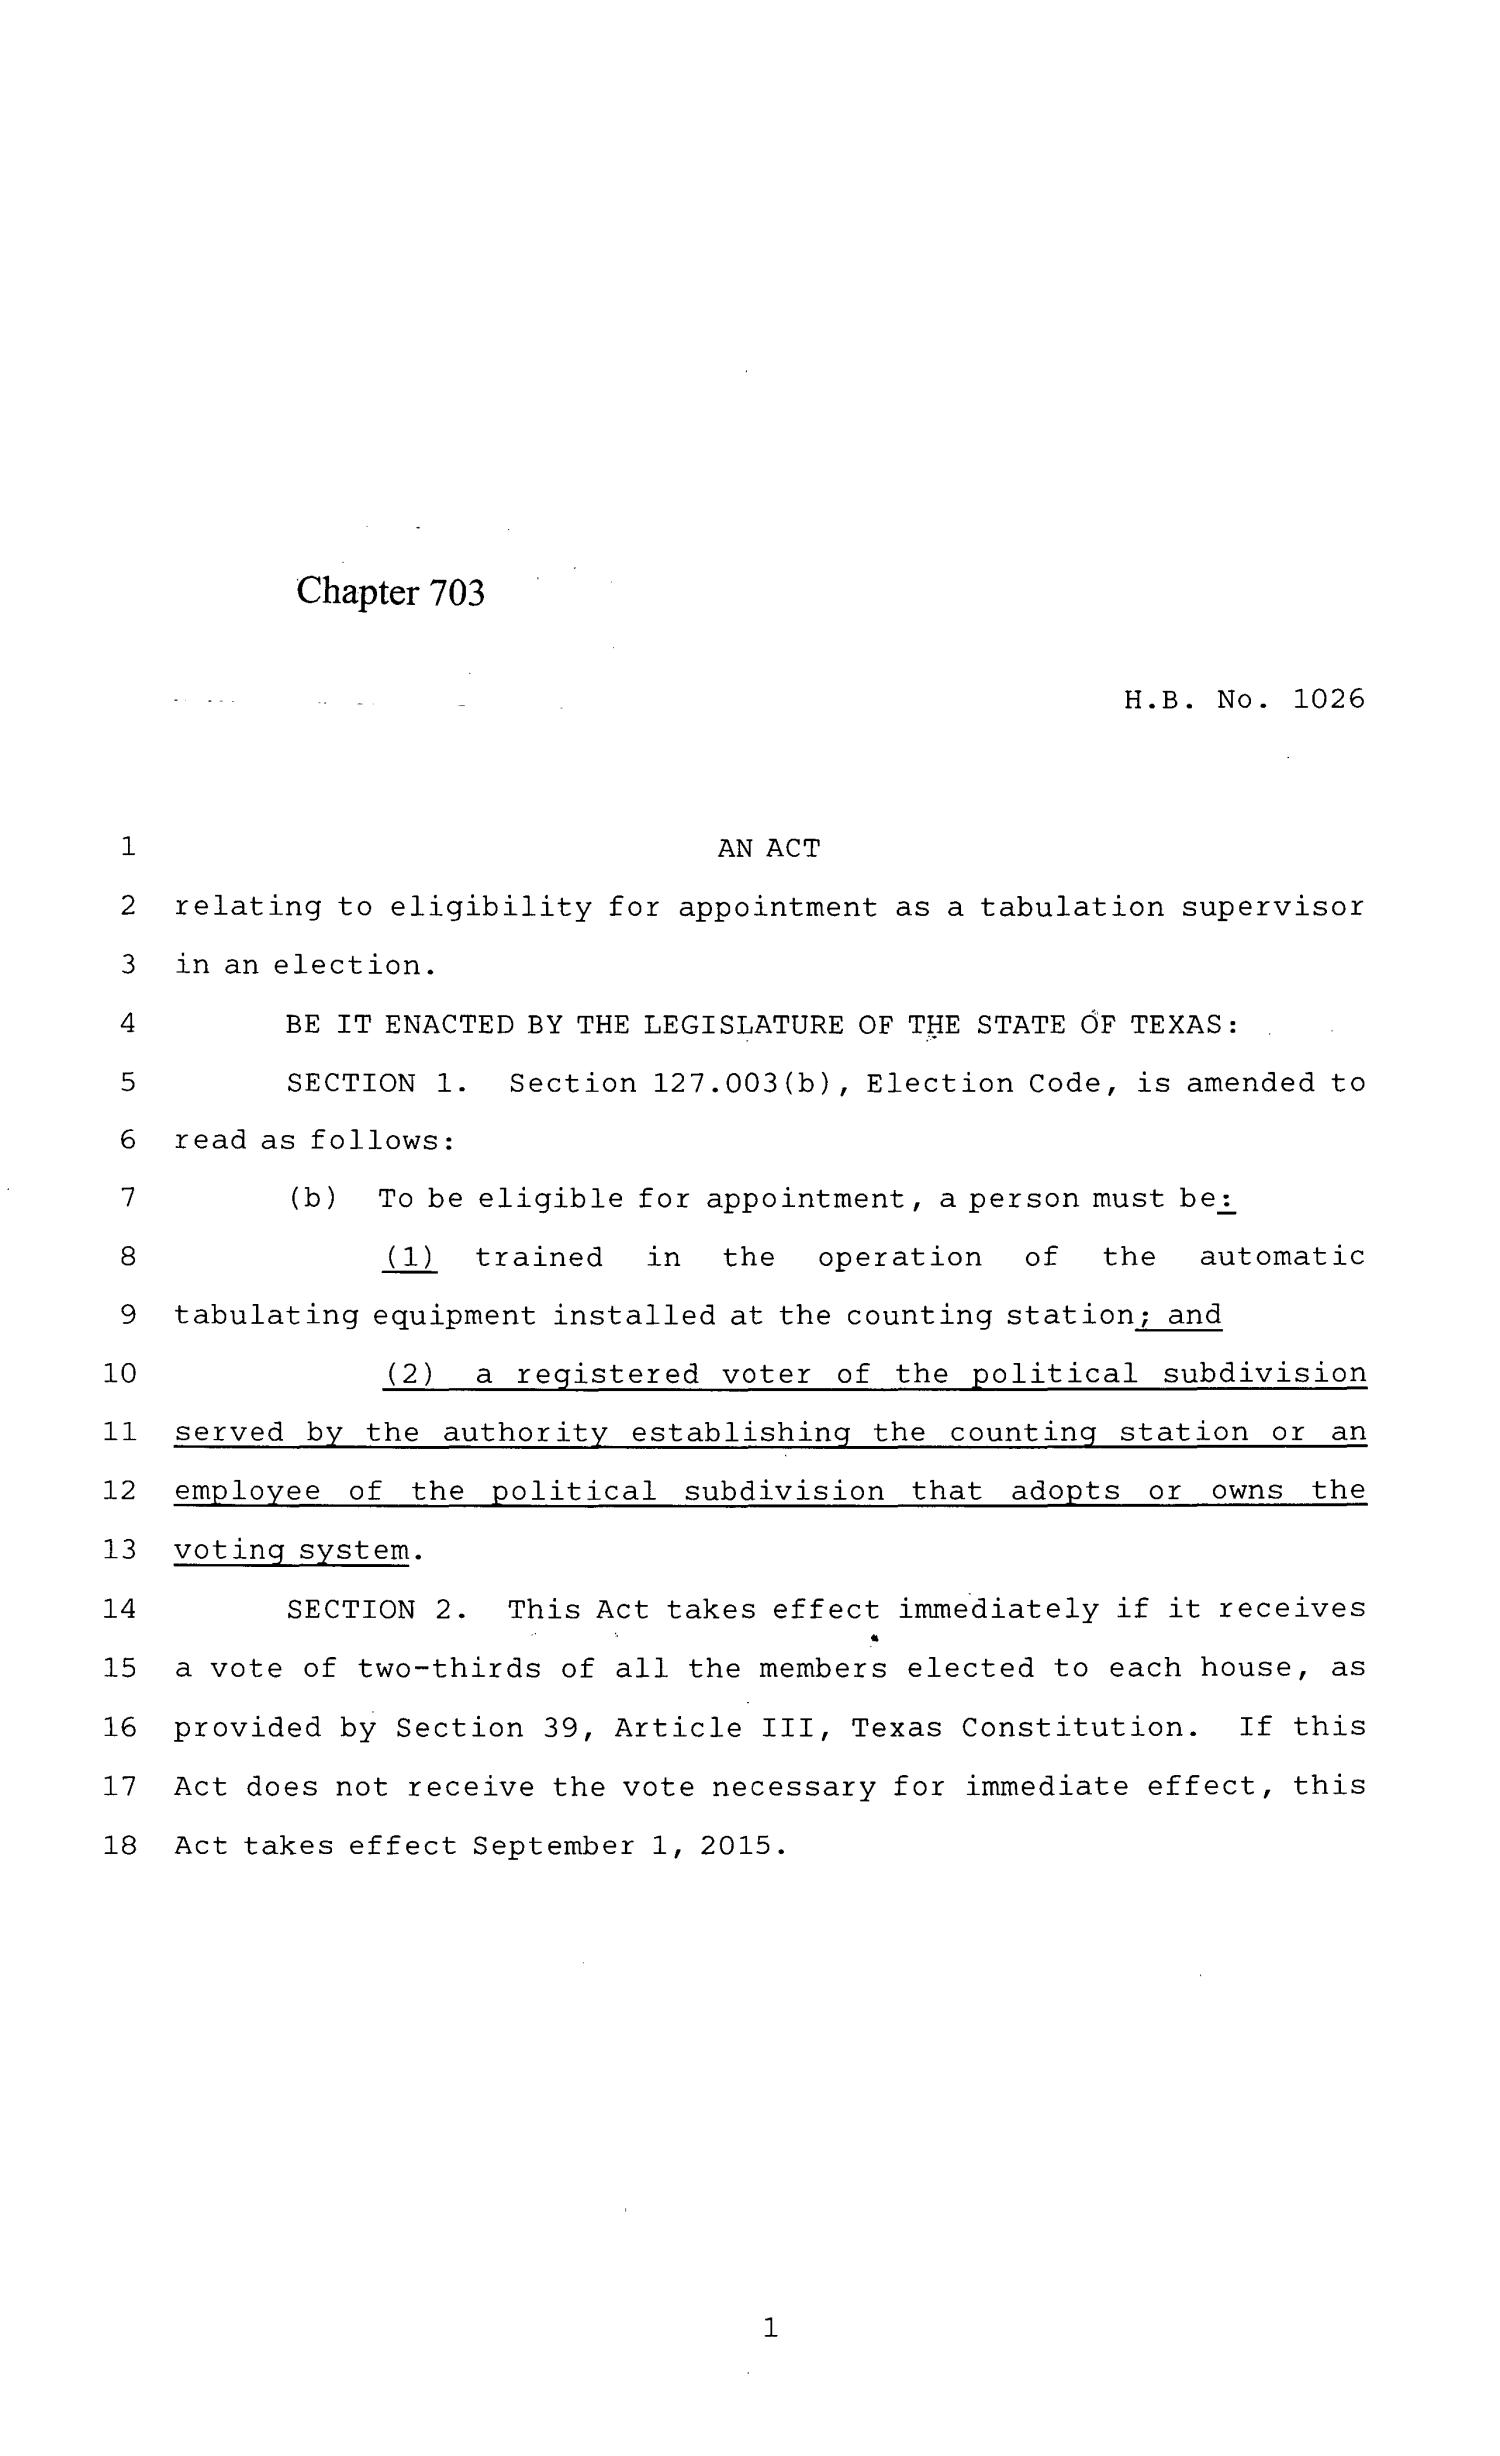 84th Texas Legislature, Regular Session, House Bill 1026, Chapter 703                                                                                                      [Sequence #]: 1 of 4